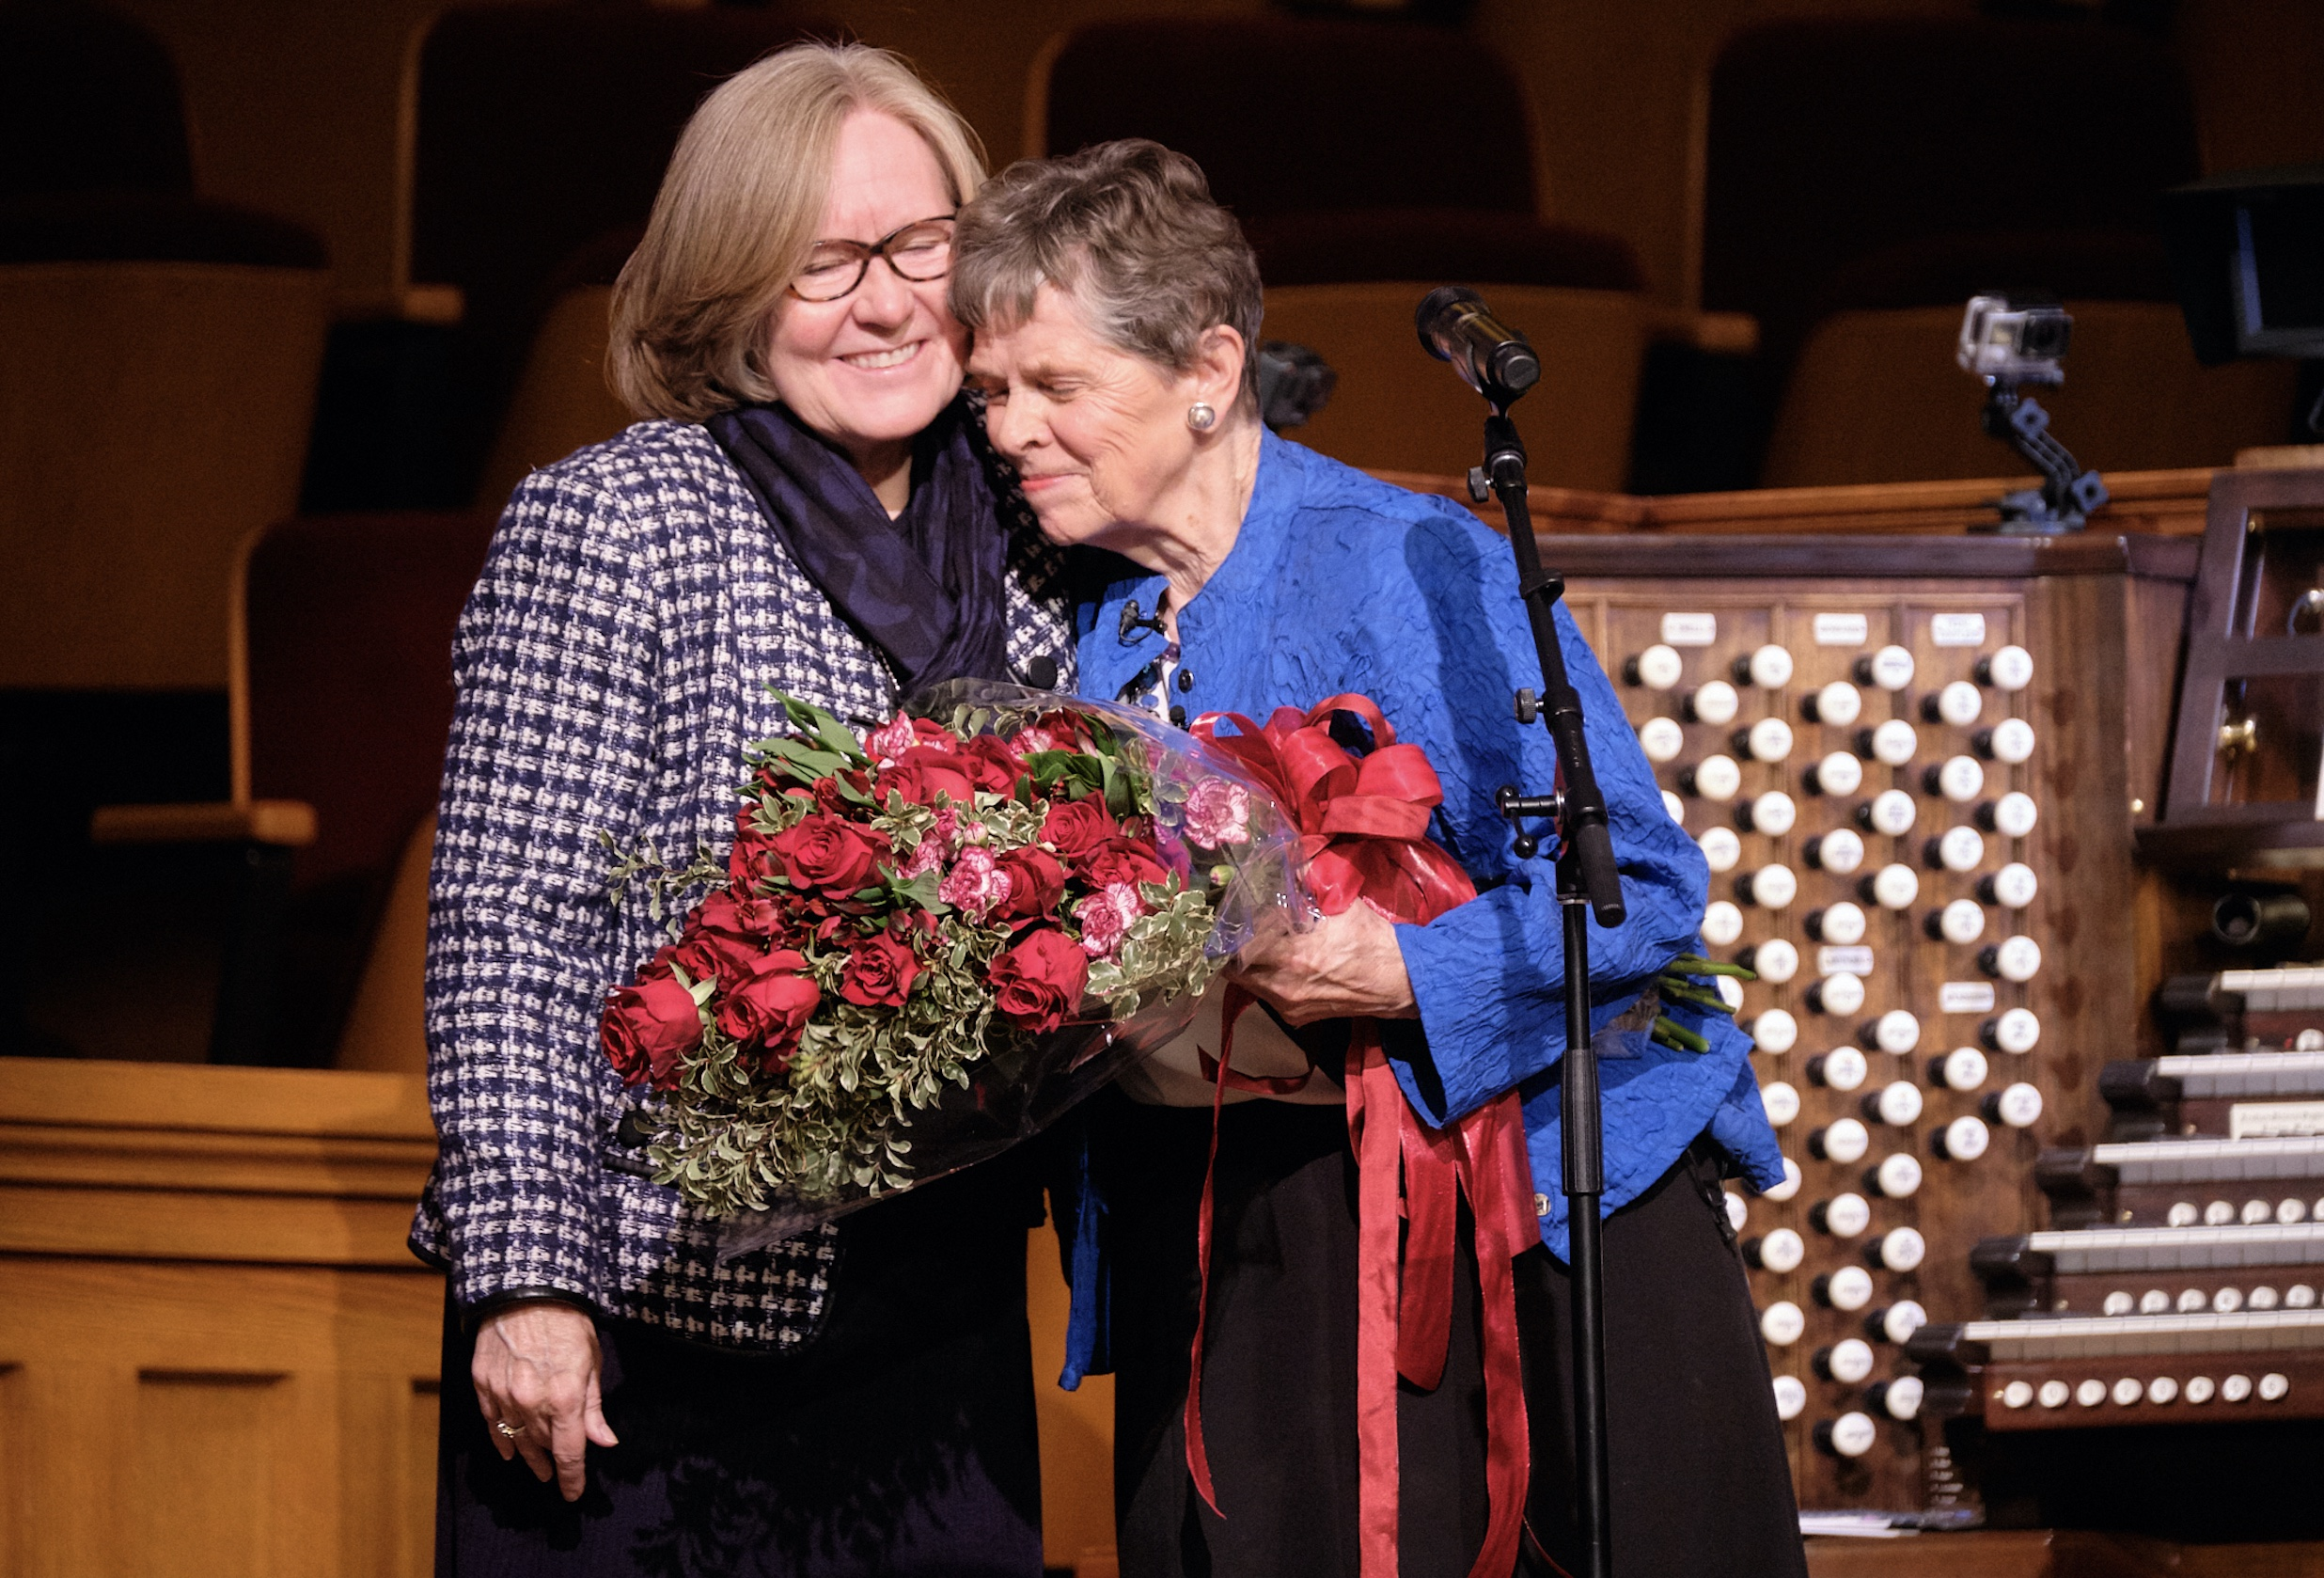 Retiring Temple Square organist Bonnie Goodliffe accepts a bouquet of red roses from Tabernacle Choir office volunteer Susan Empey at the Salt Lake Tabernacle after 40 years of service on Monday, Oct. 21, 2019.